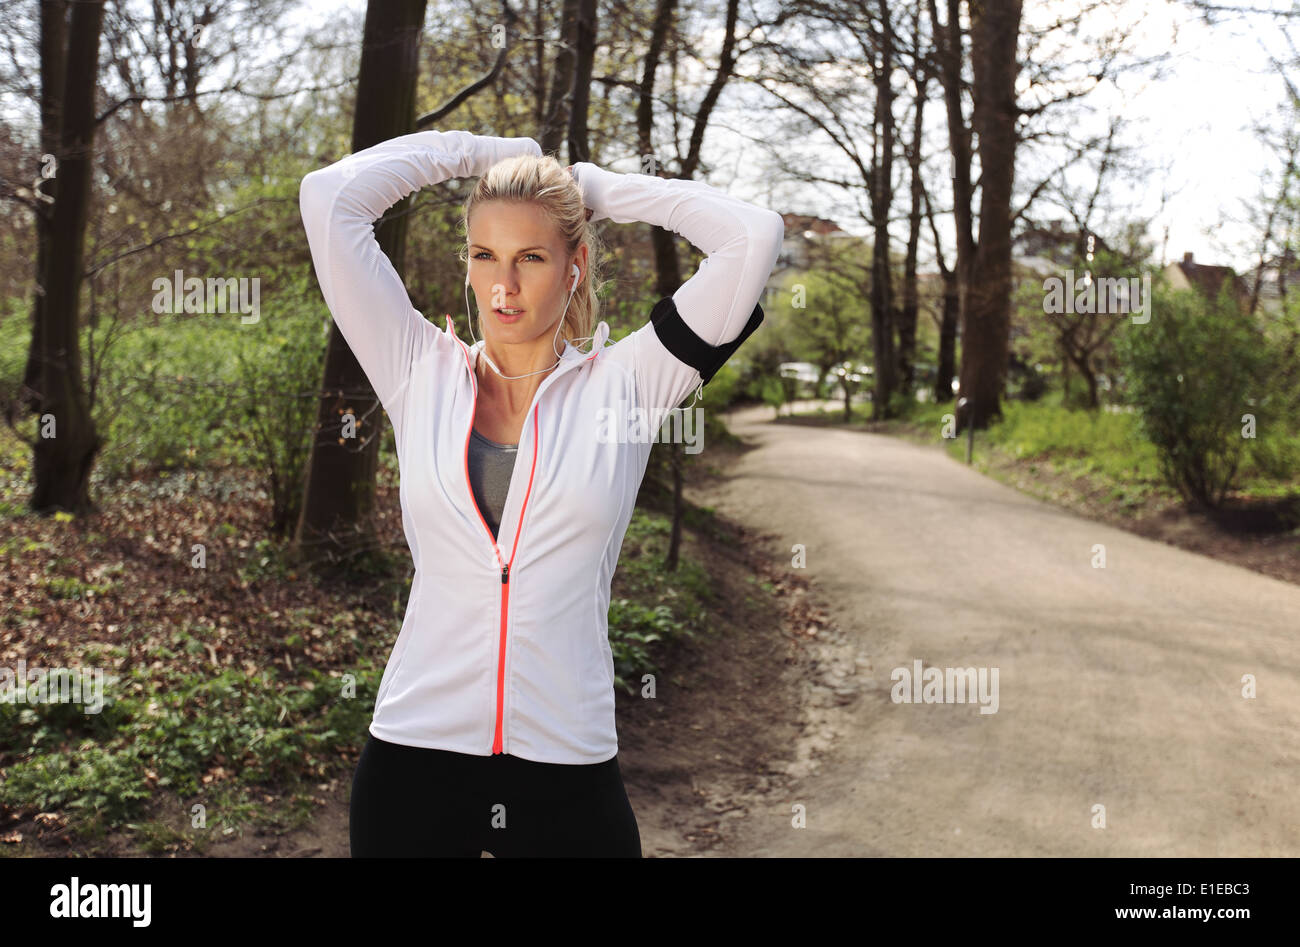 Young fitness woman tying hair before her run. Fit young female athlete focusing on her run in forest. Stock Photo